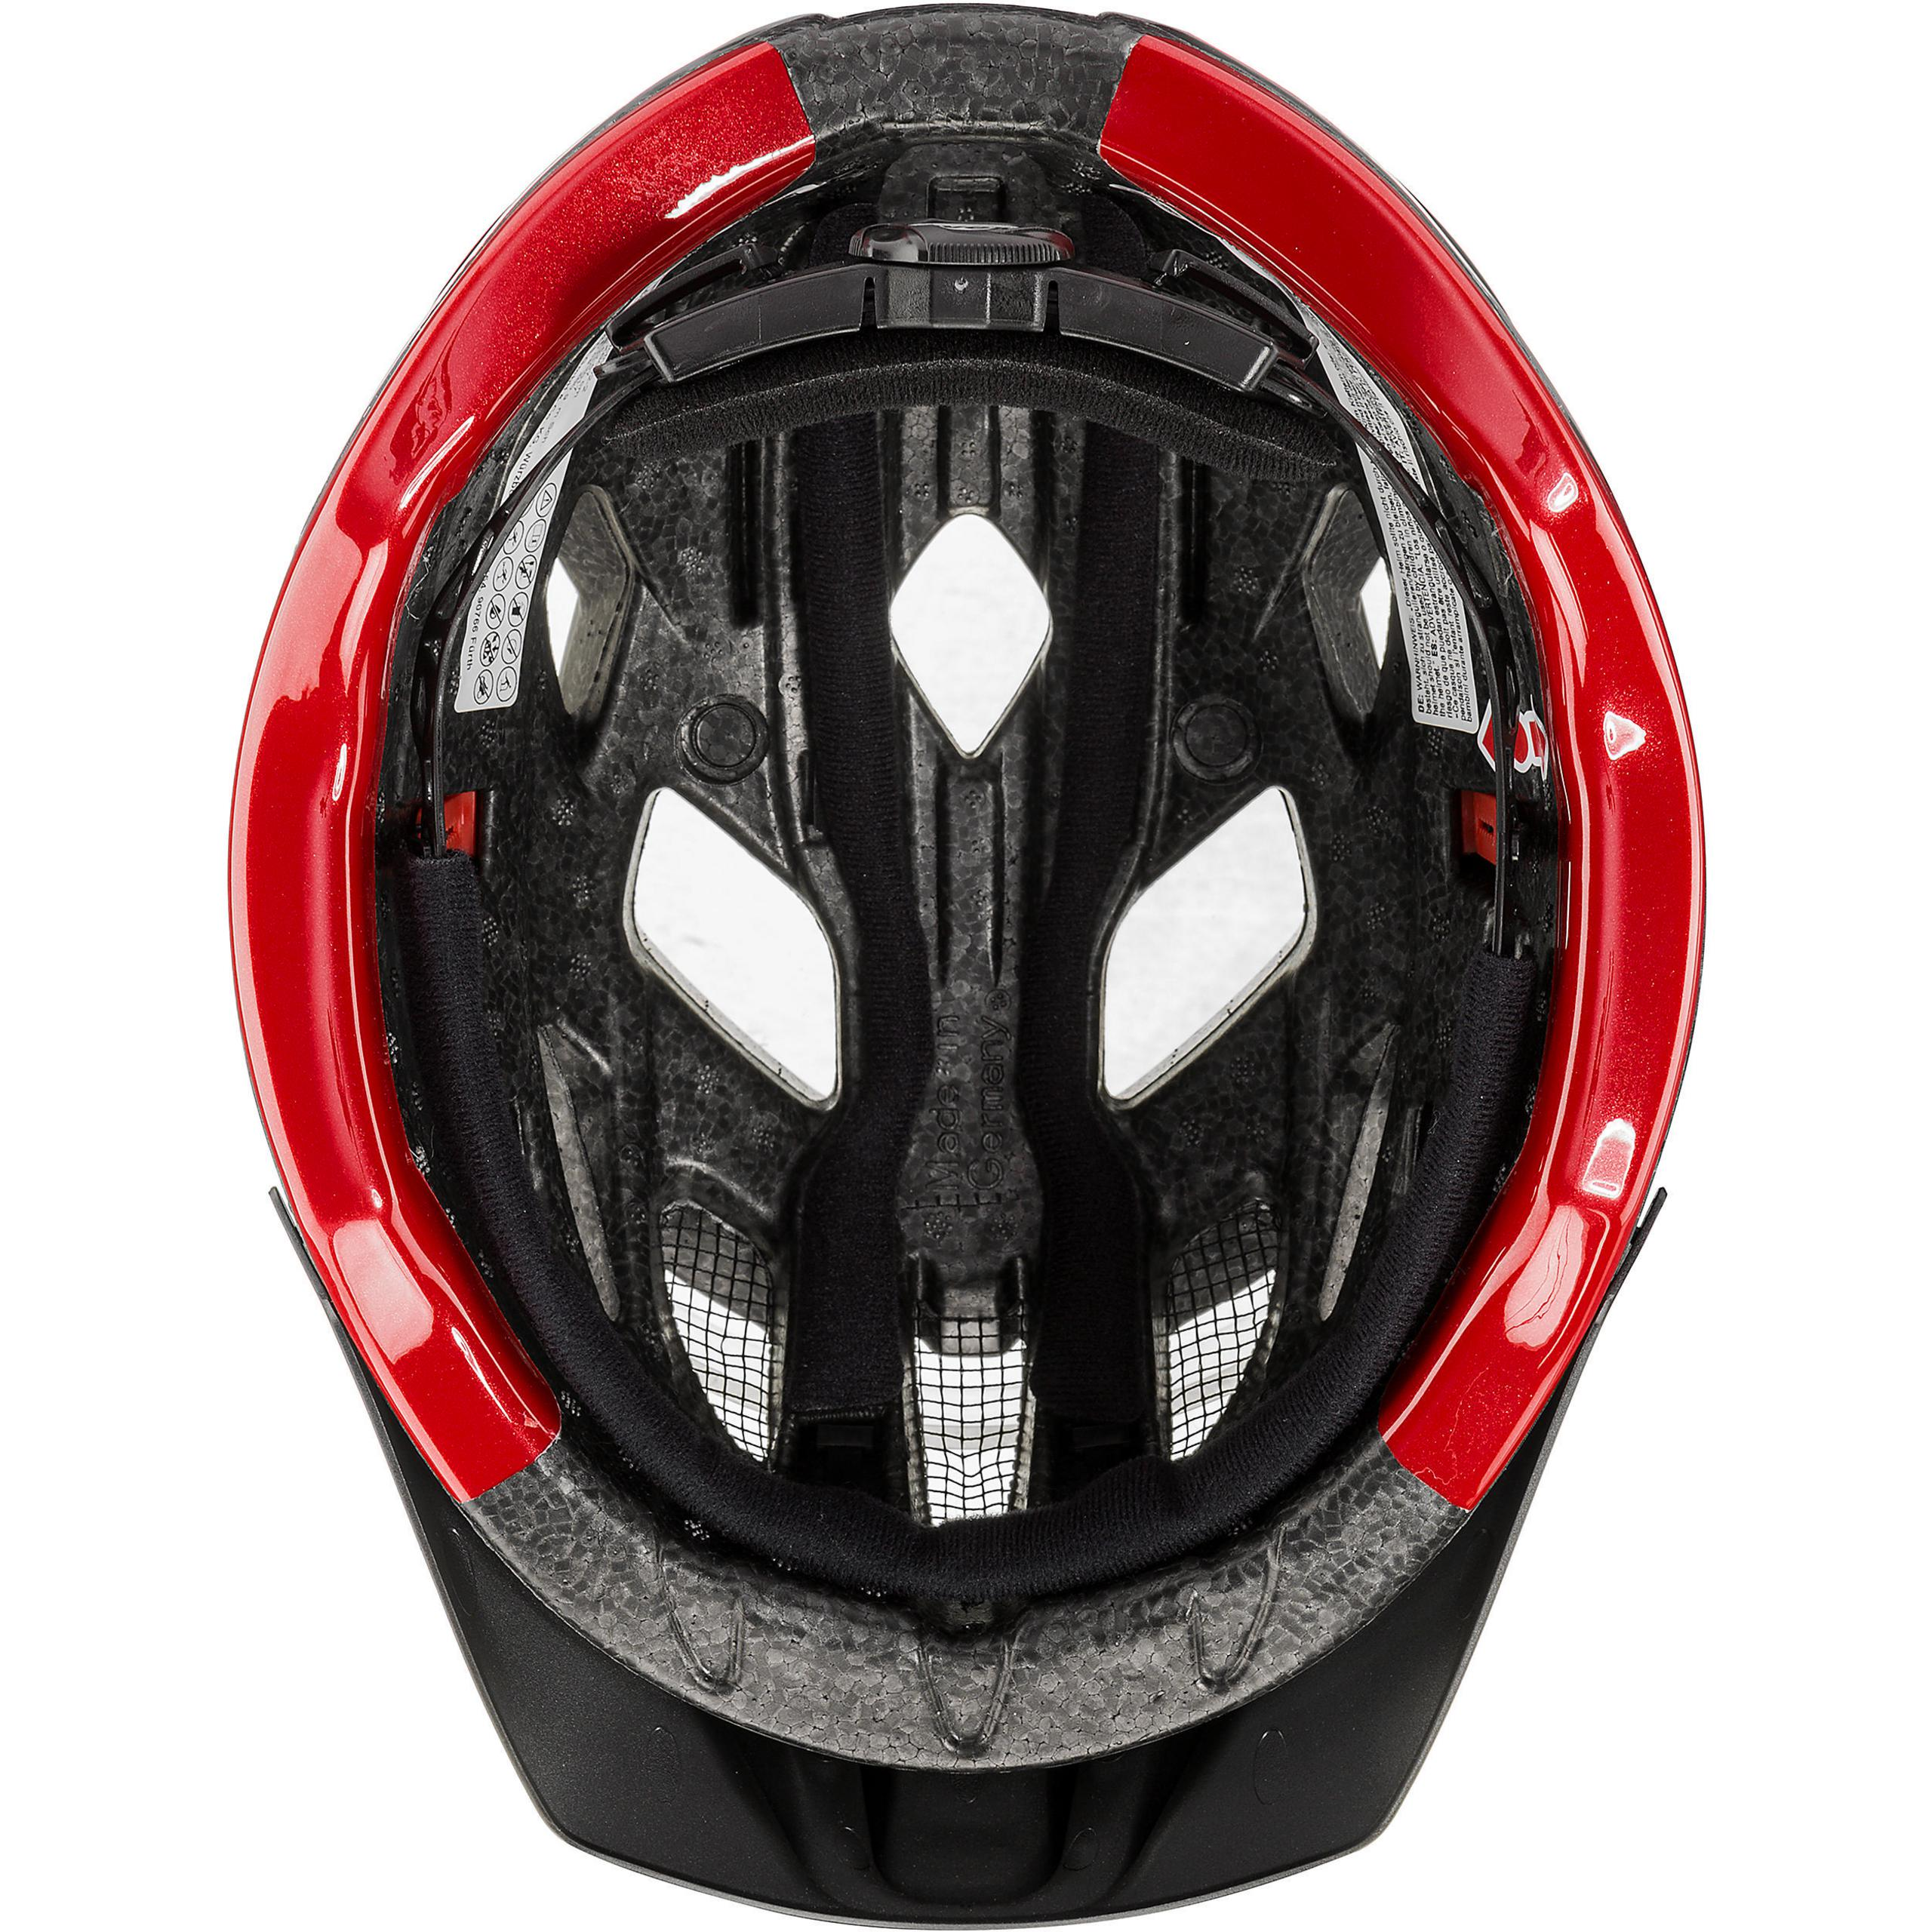 Top * Uvex Adultes Casque ACTIVE Taille 52-57 Cm anthracite-red